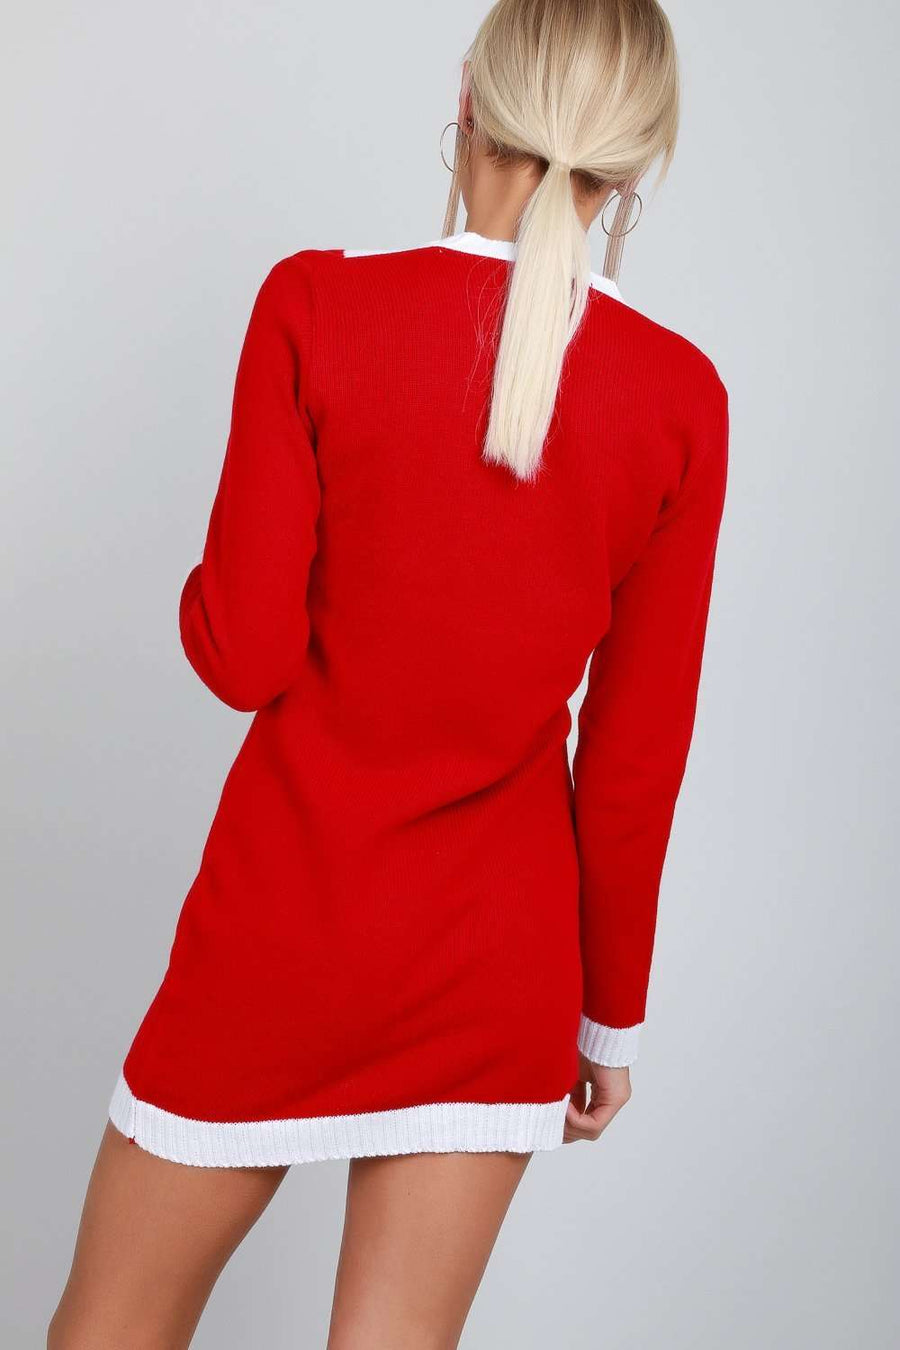 Long Sleeve Santa Costume Jumper Dress - bejealous-com